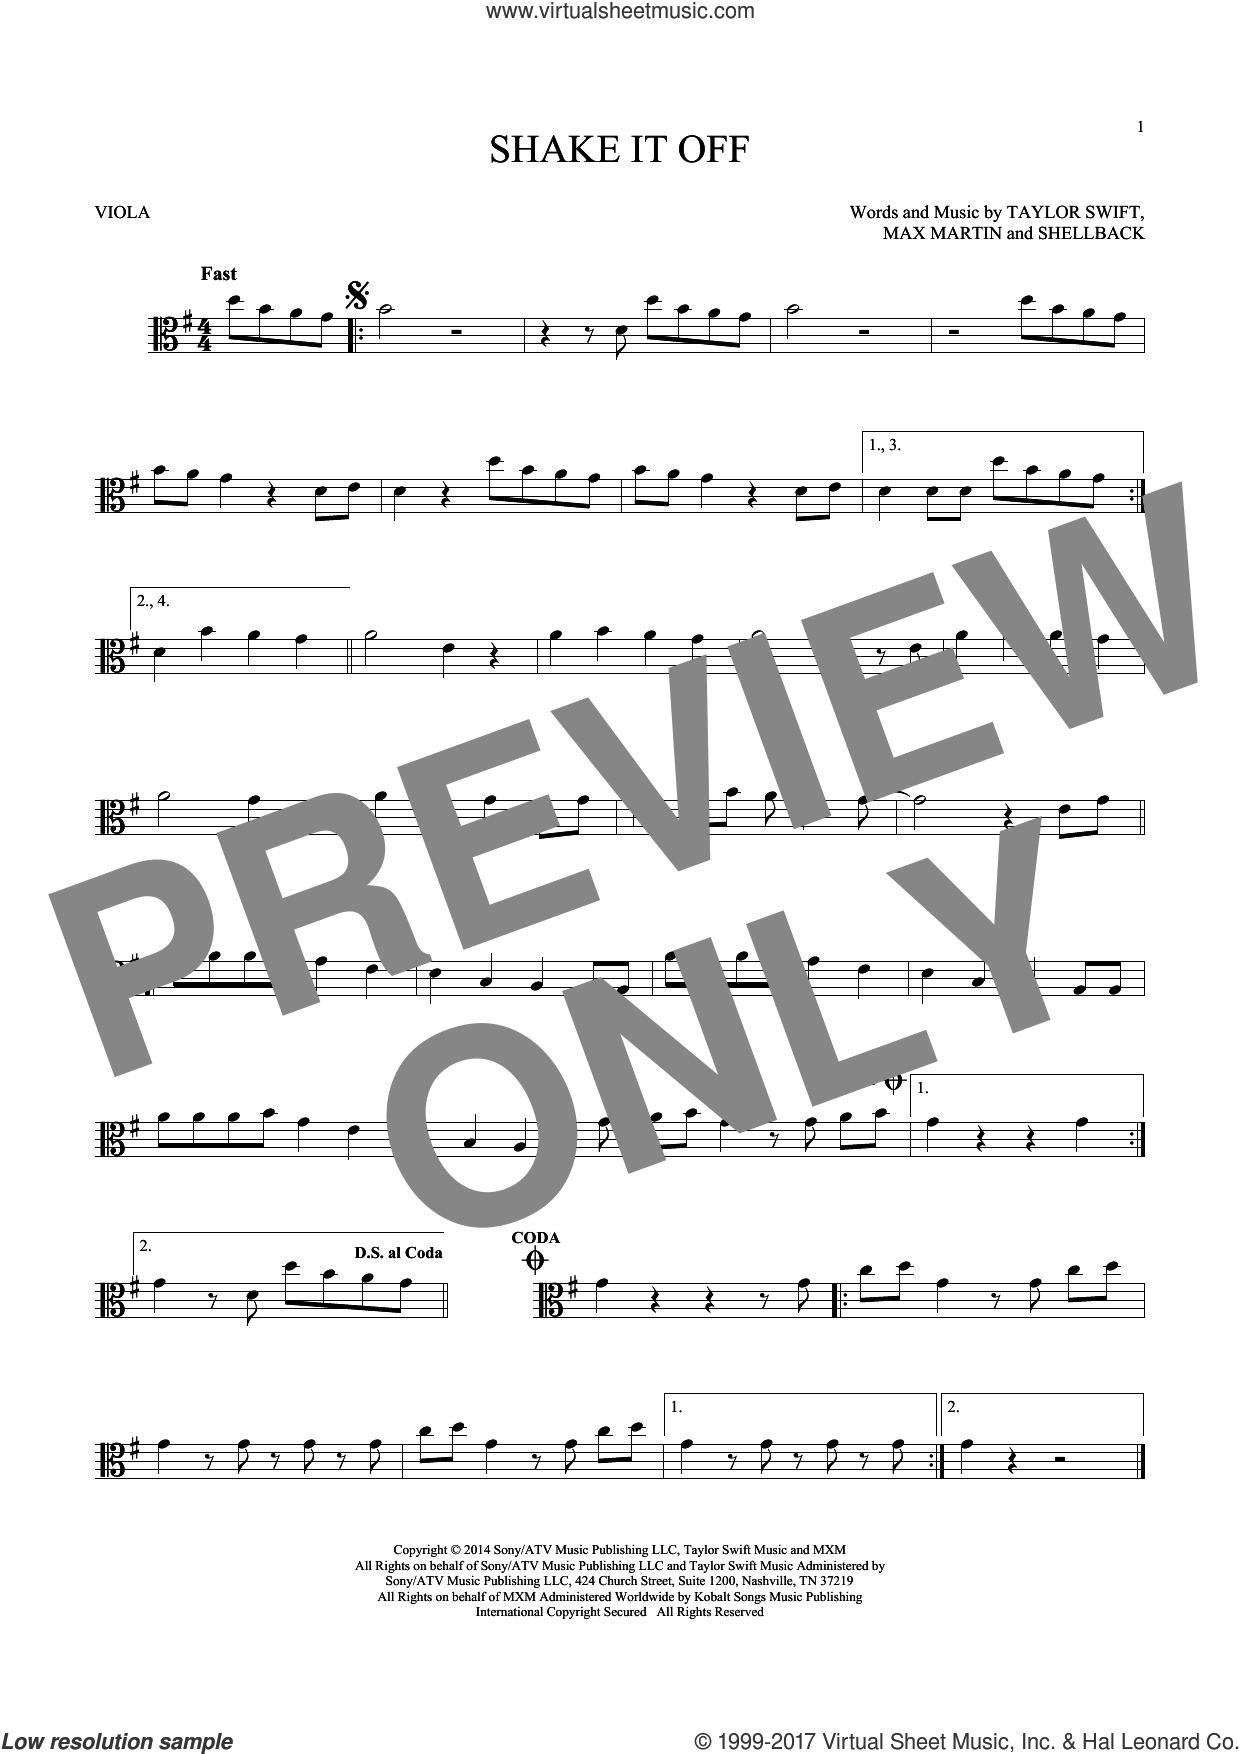 Shake It Off sheet music for viola solo by Taylor Swift, Johan Schuster, Max Martin and Shellback, intermediate skill level